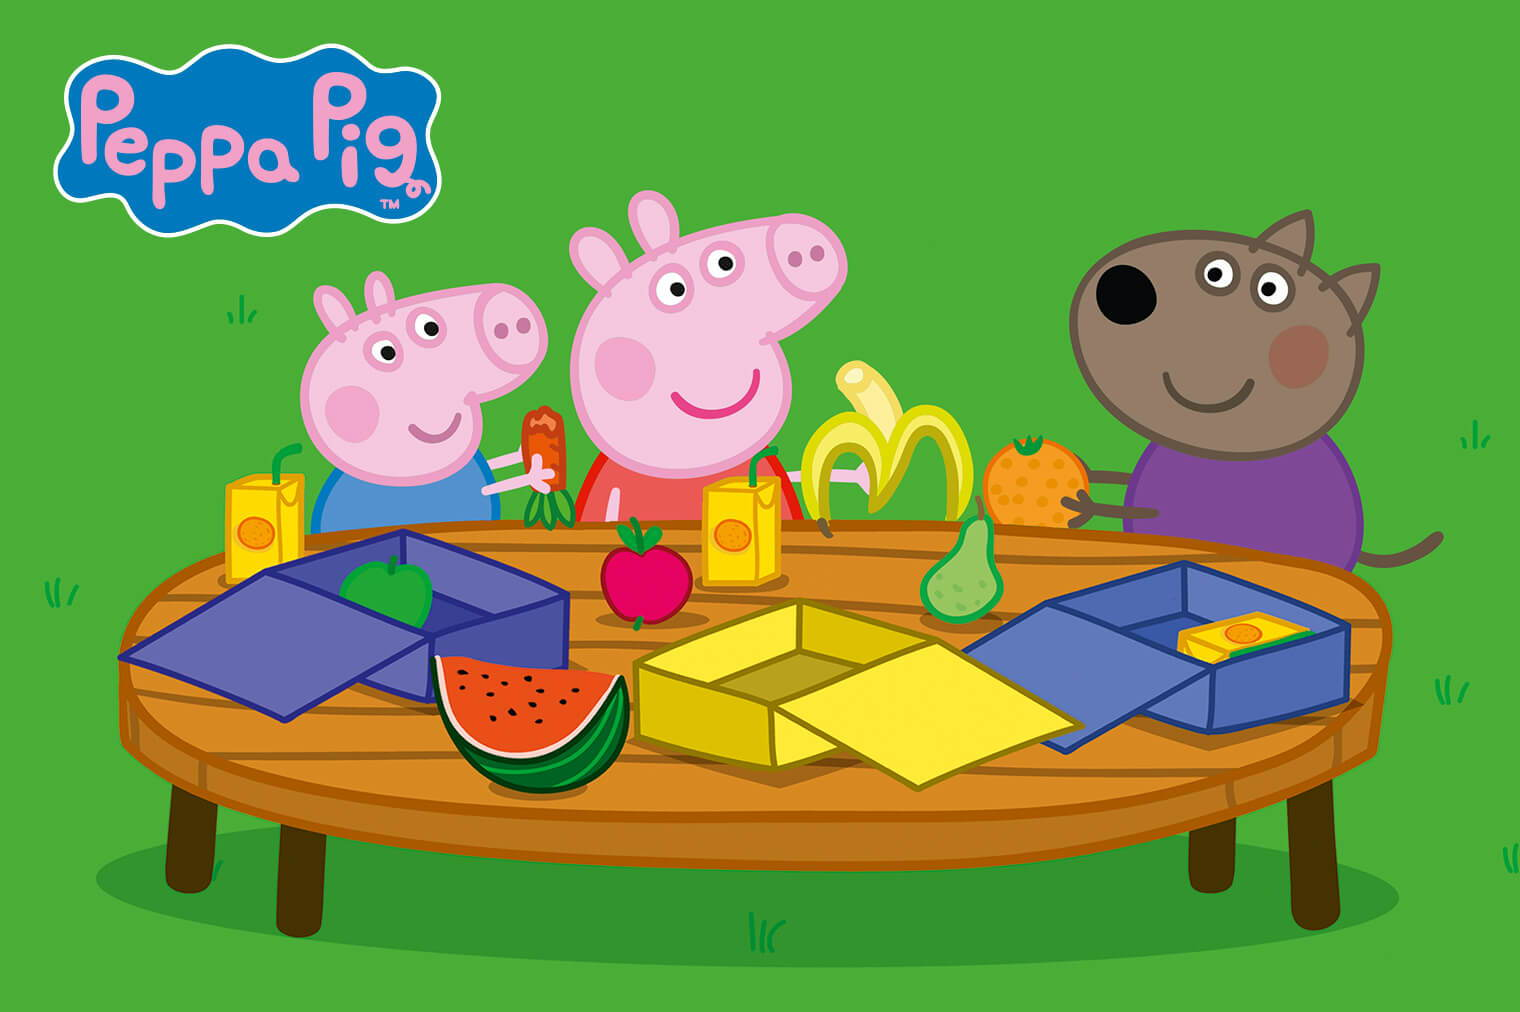 Picture Of Peppa Pig And Friends Sitting At A Table